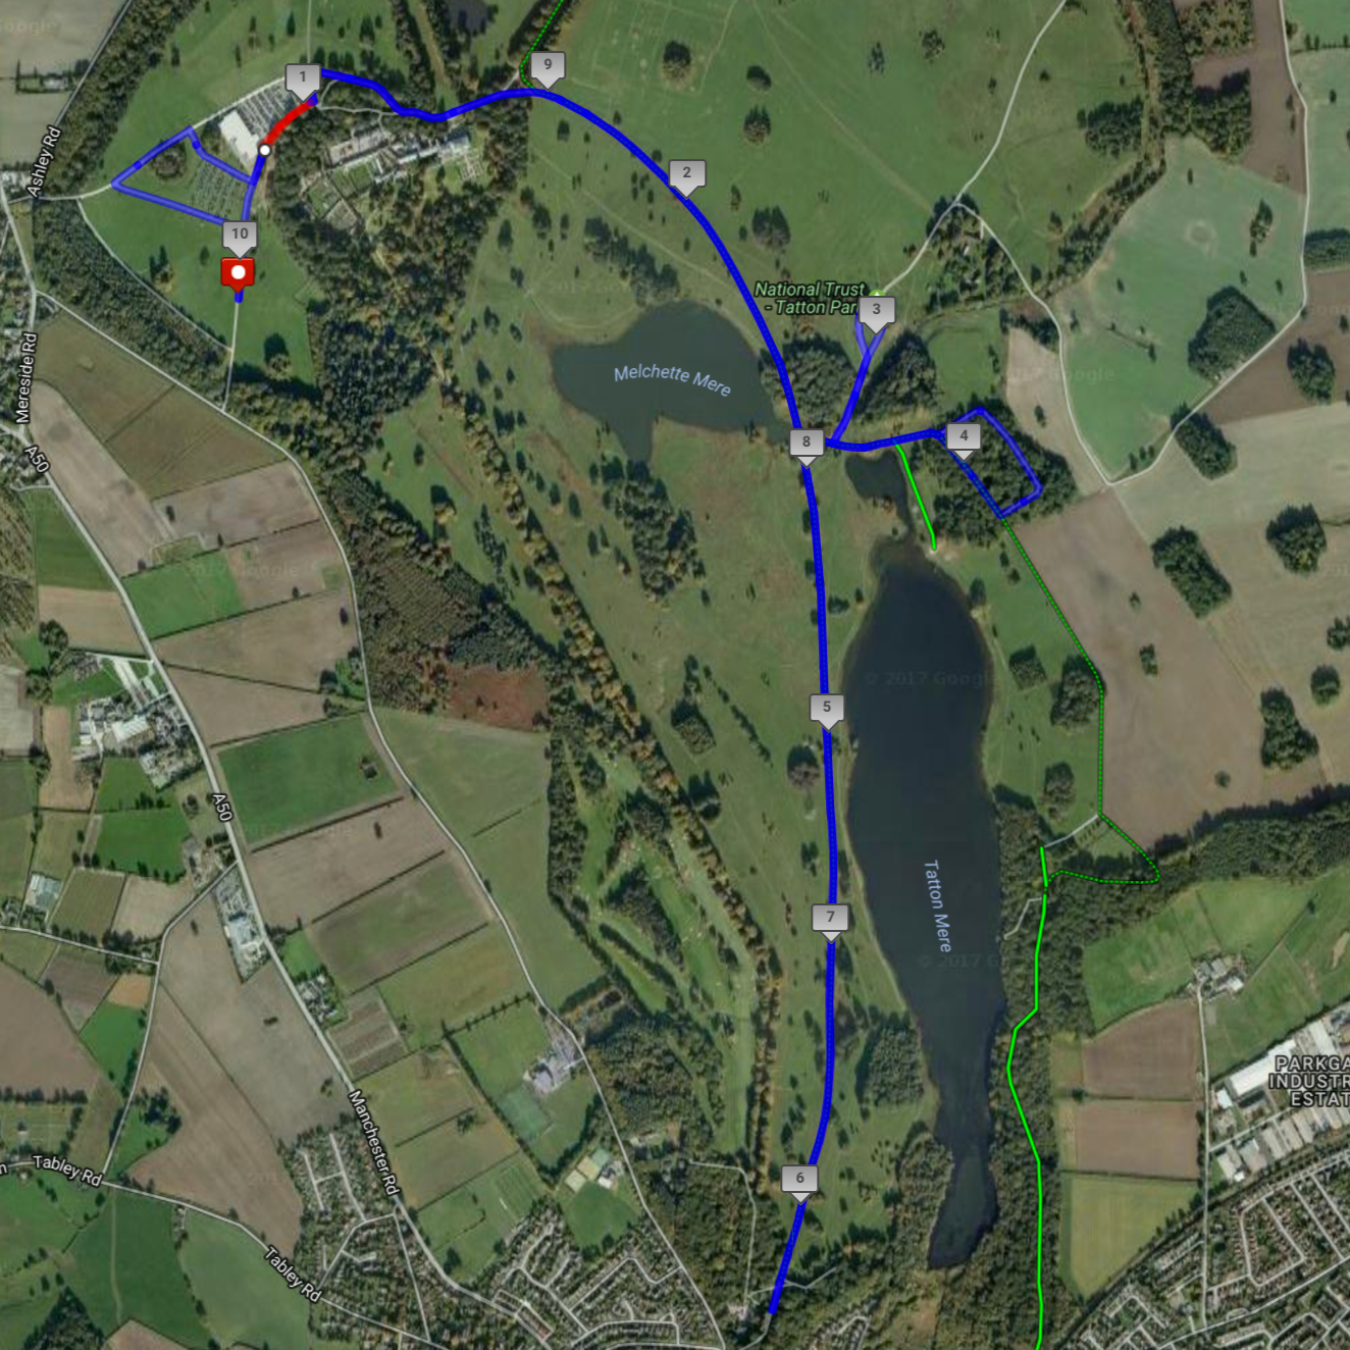 Tatton10Kcourse